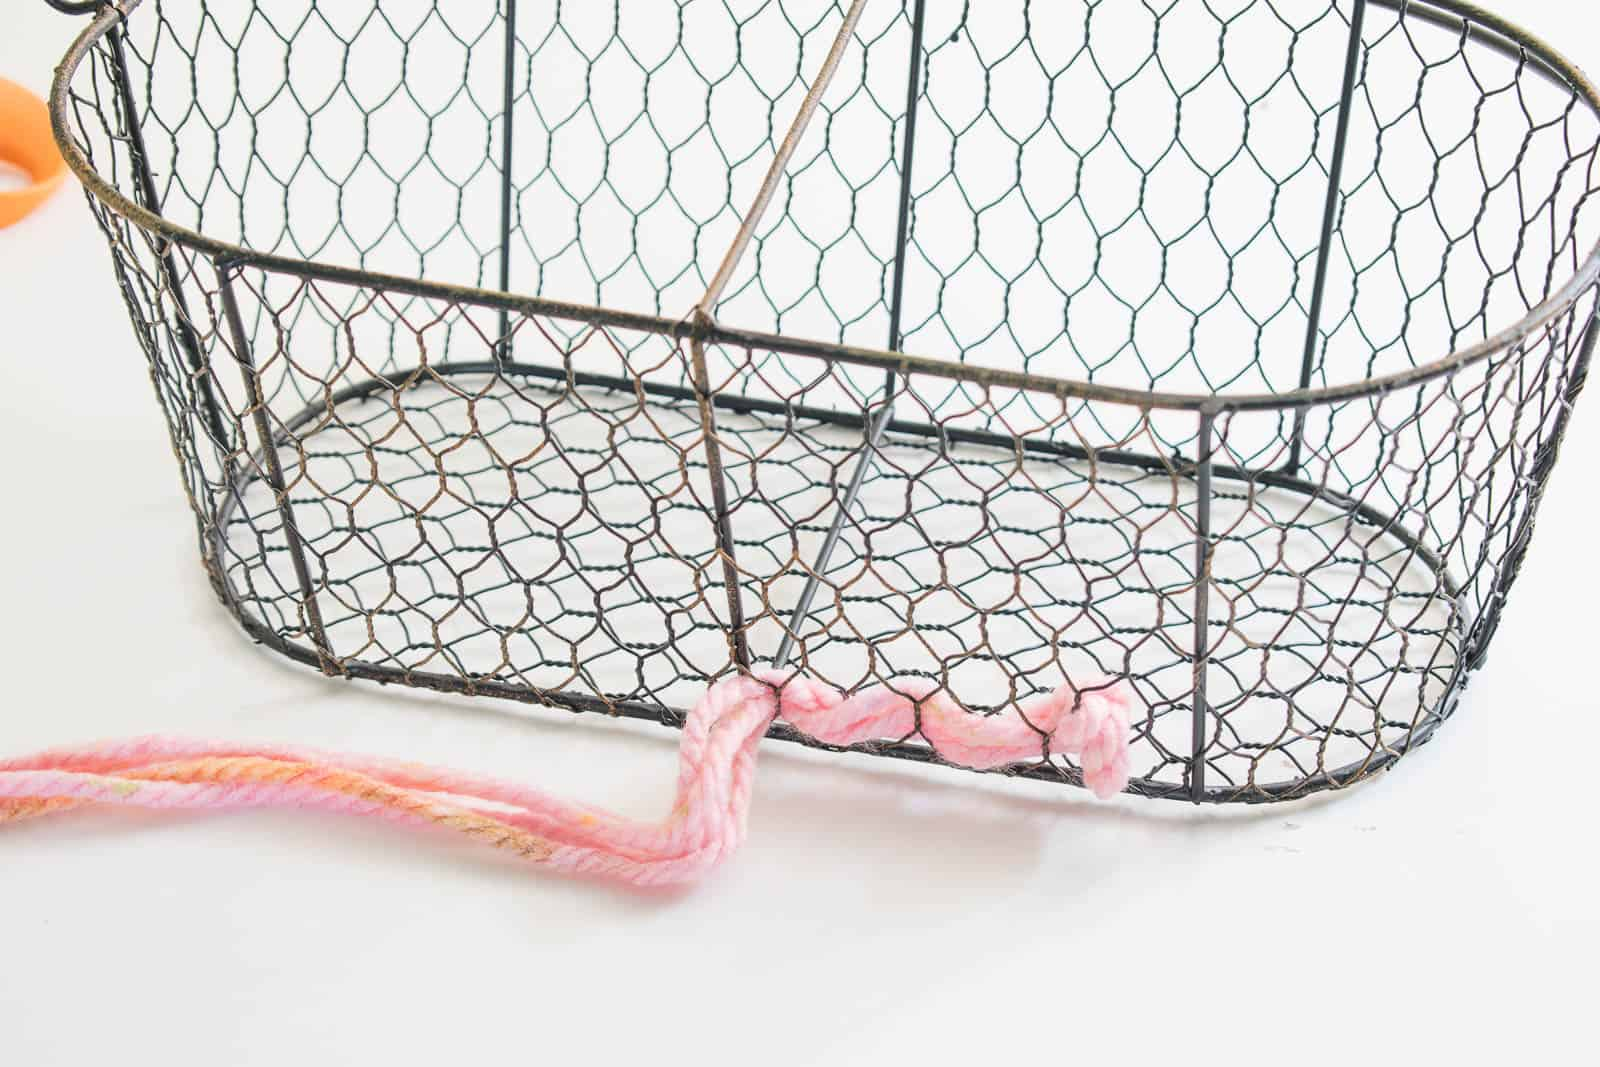 weave the yarn through the spaces of the basket